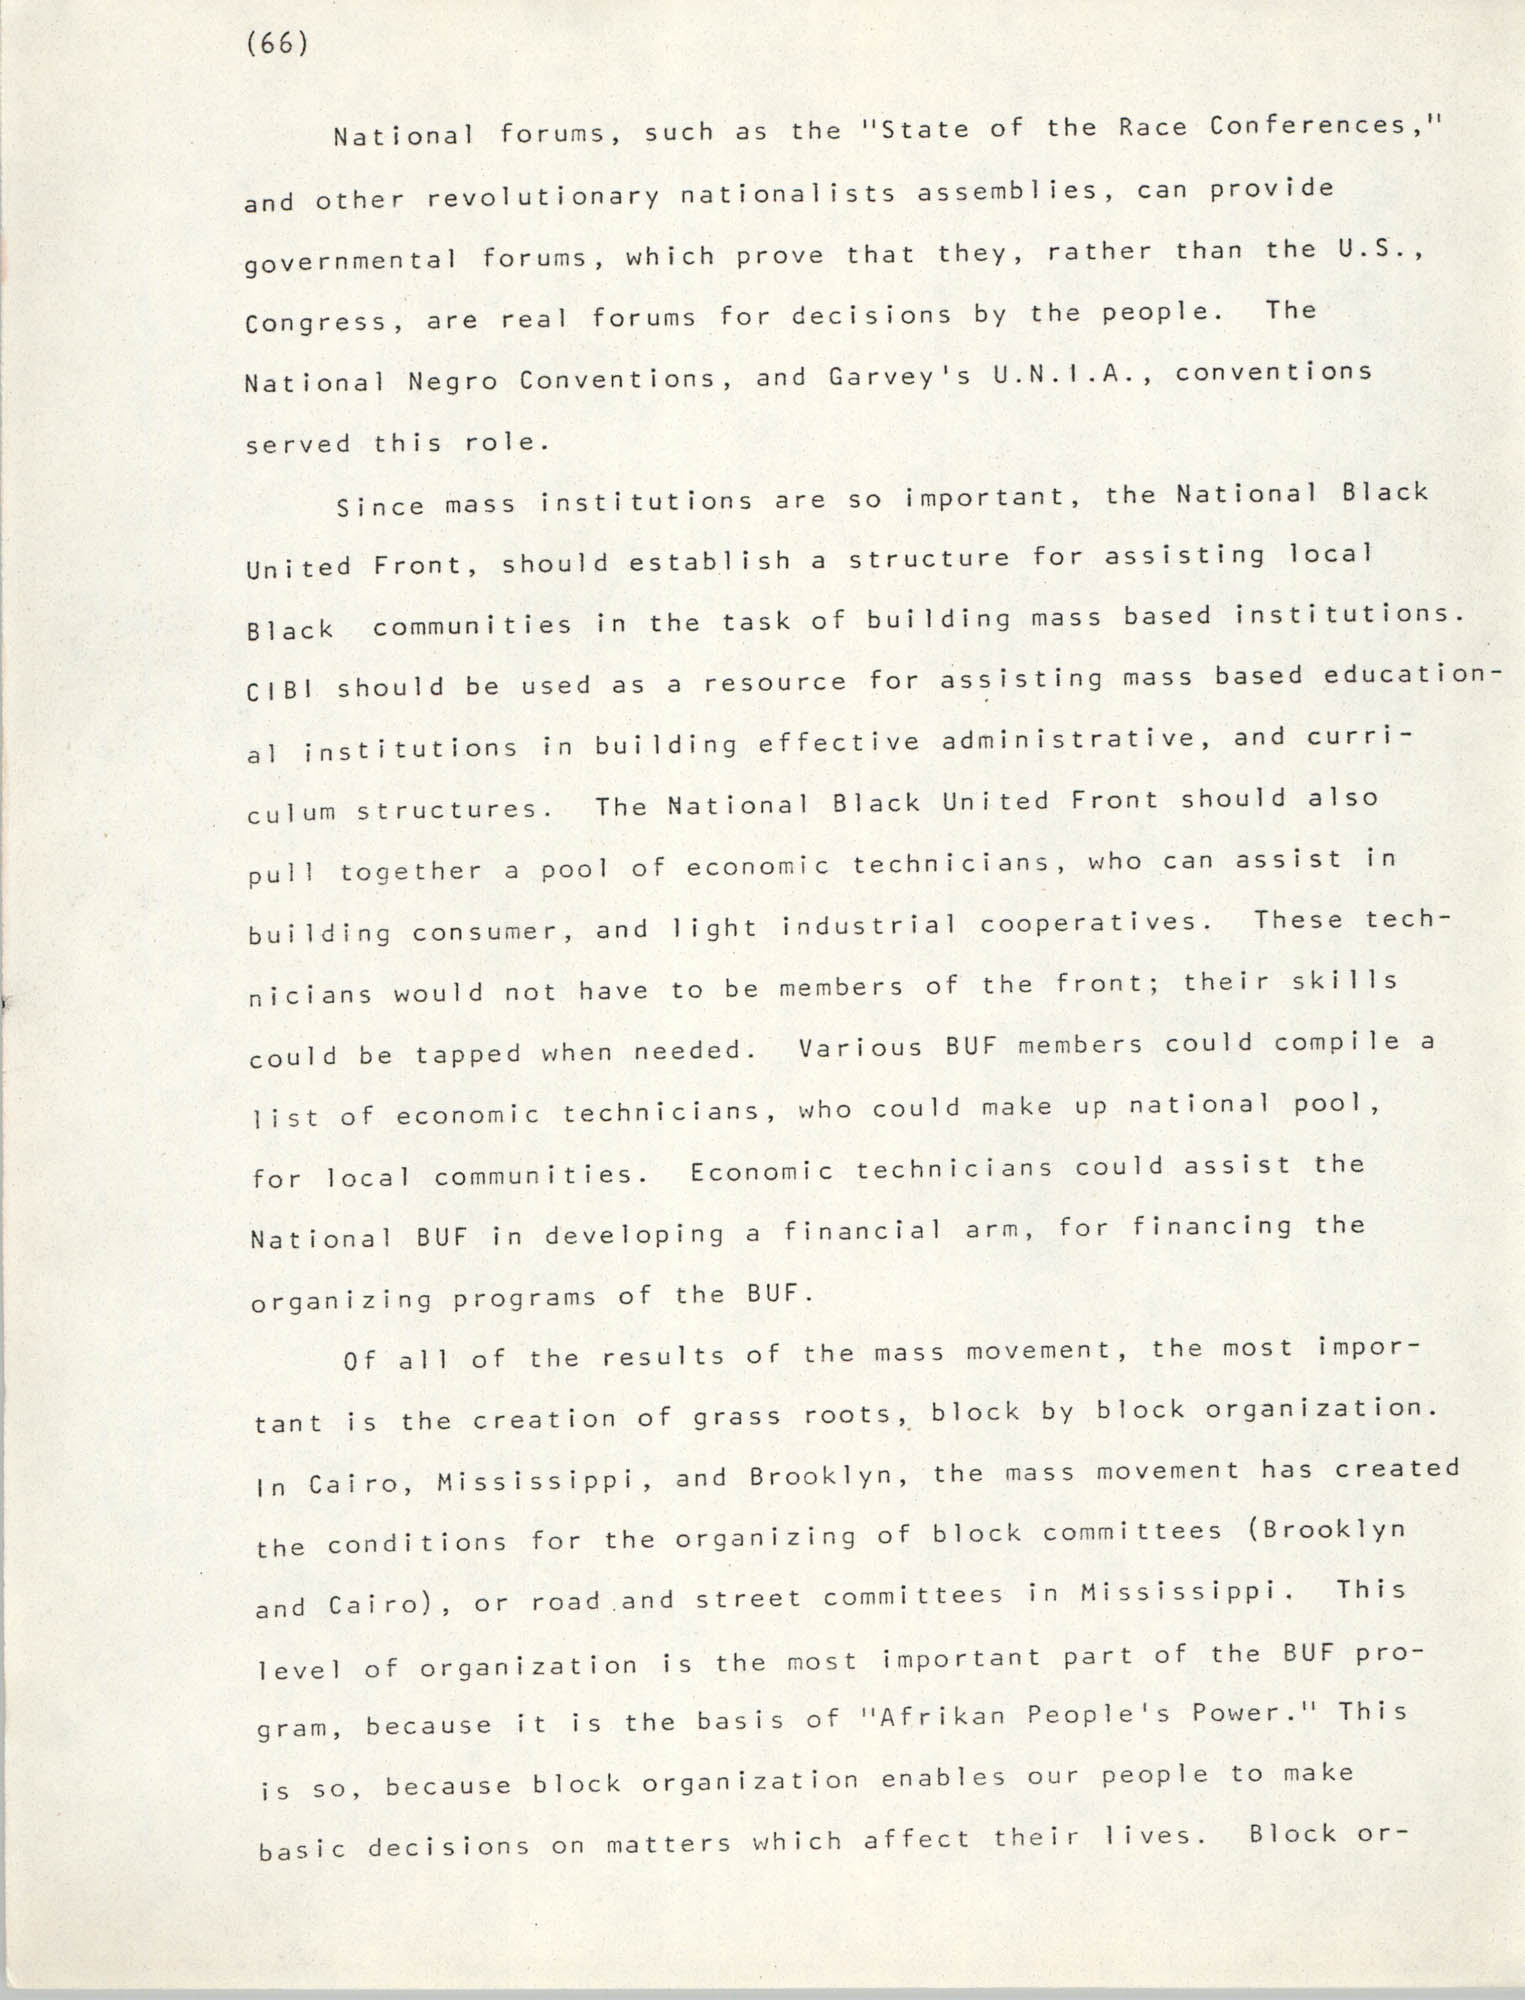 Pan-African Committee of the Black United Front, Page 66